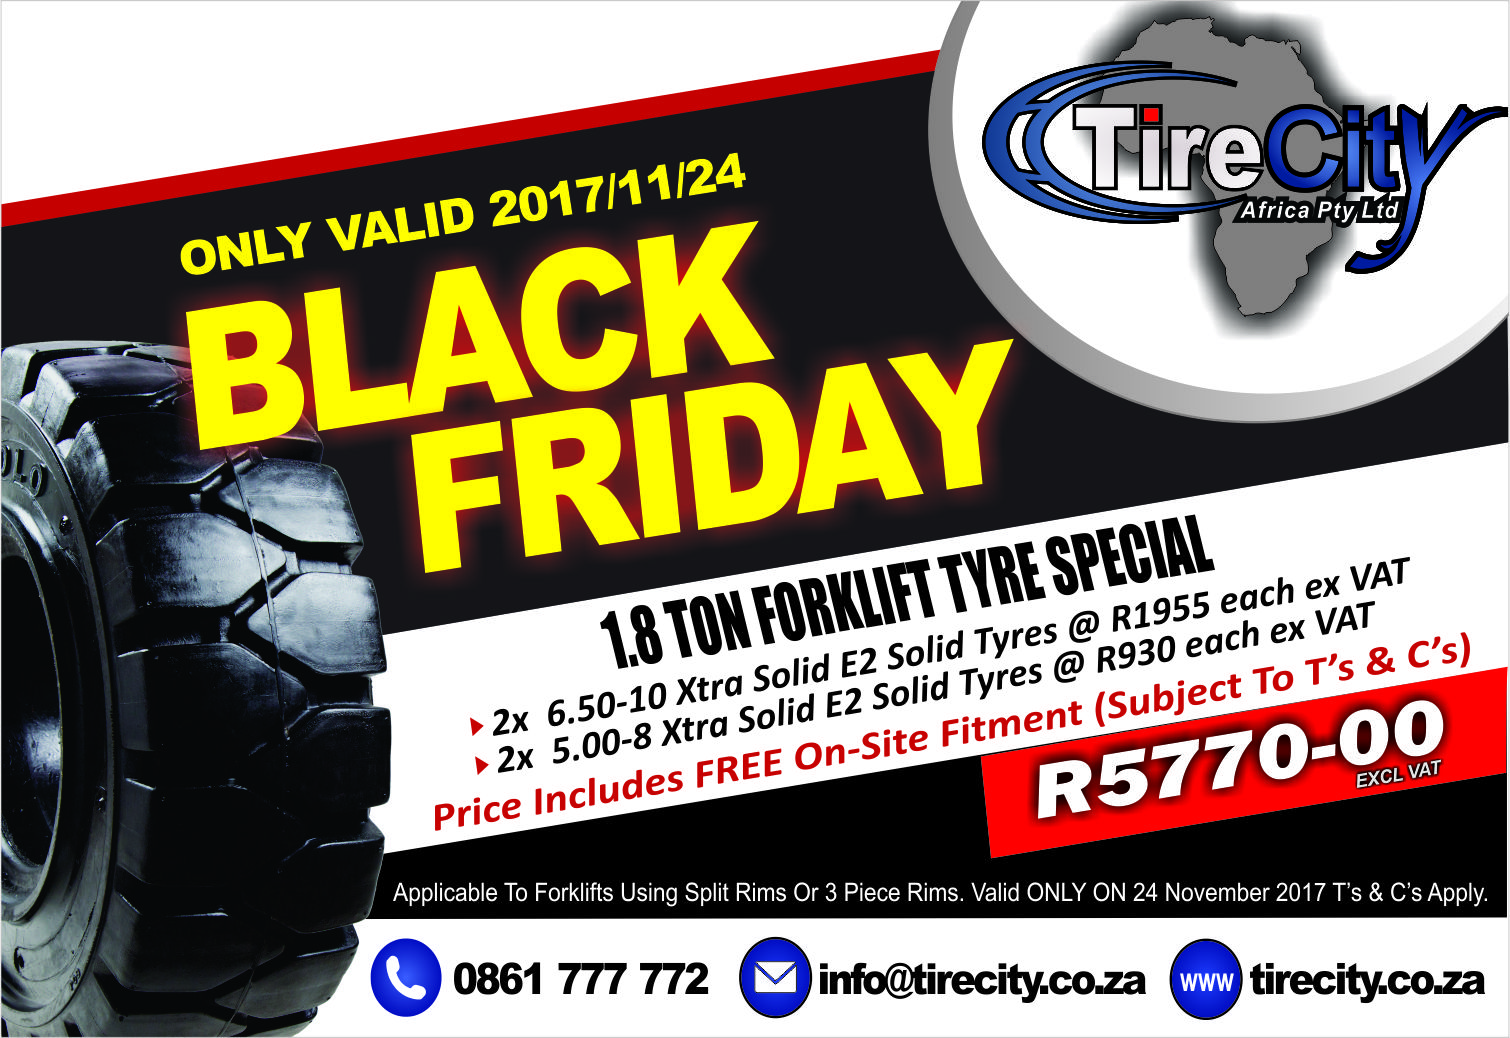 Forklift solid tyre sale in Cape Town - Black Friday Only Promotion